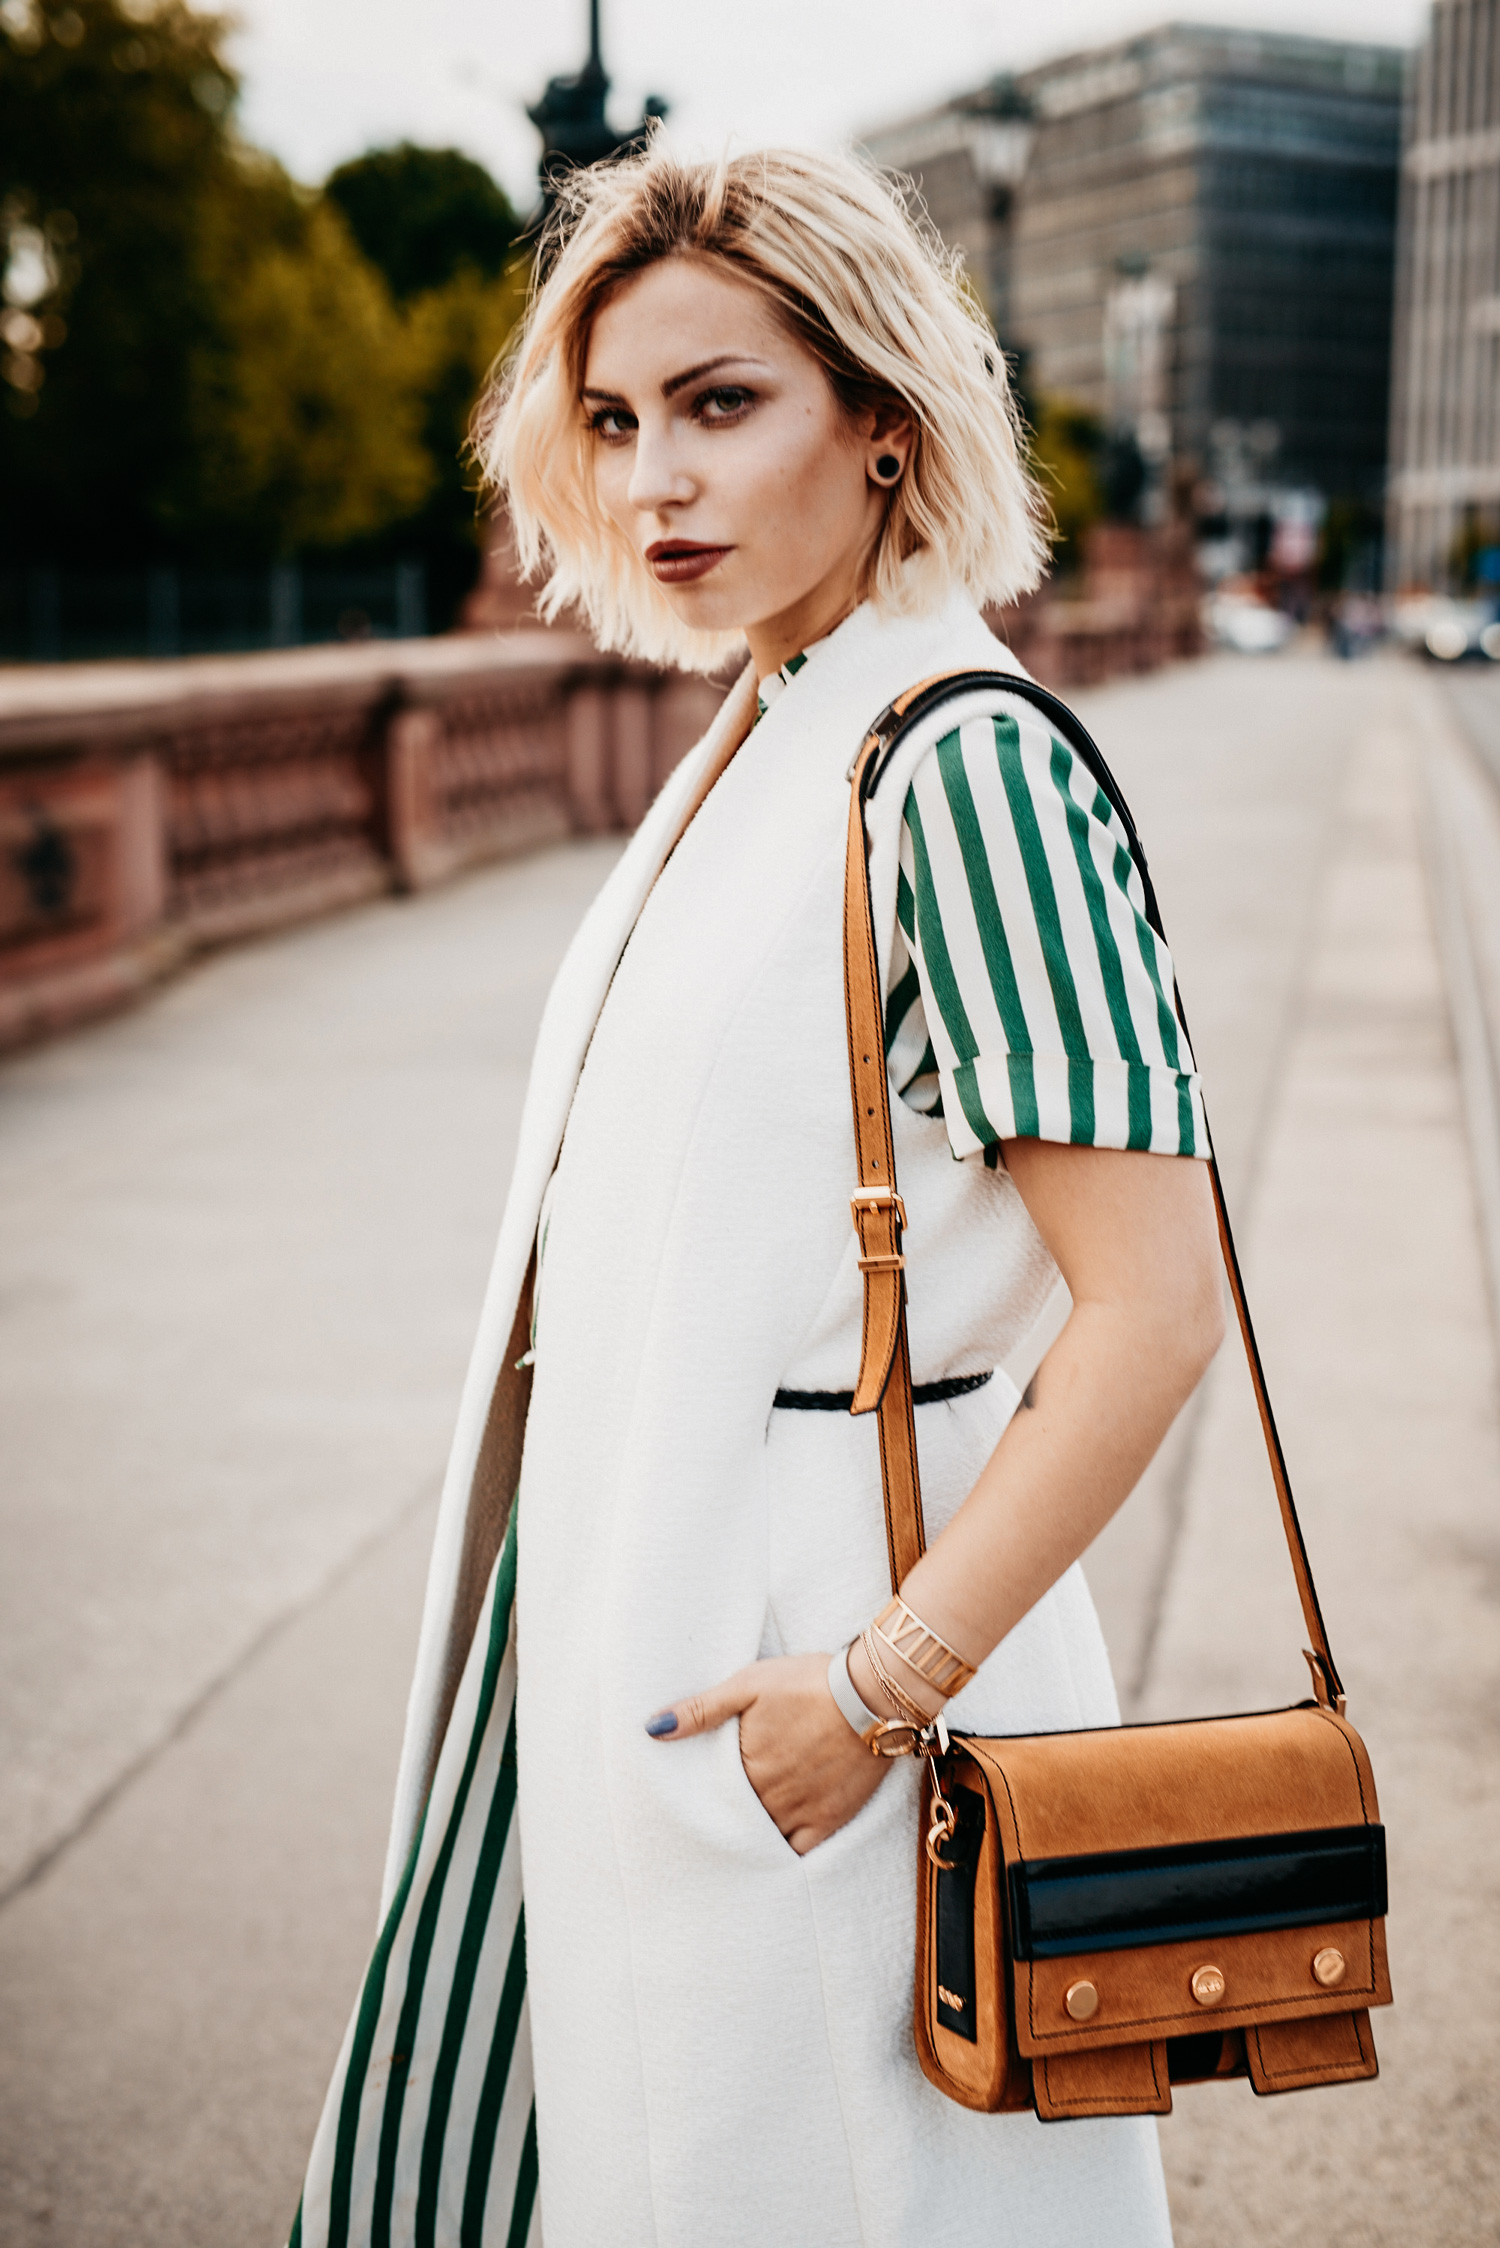 Amazon Fashion campaign | Look like you | #saysomethingnice | long green dress and a long white vest